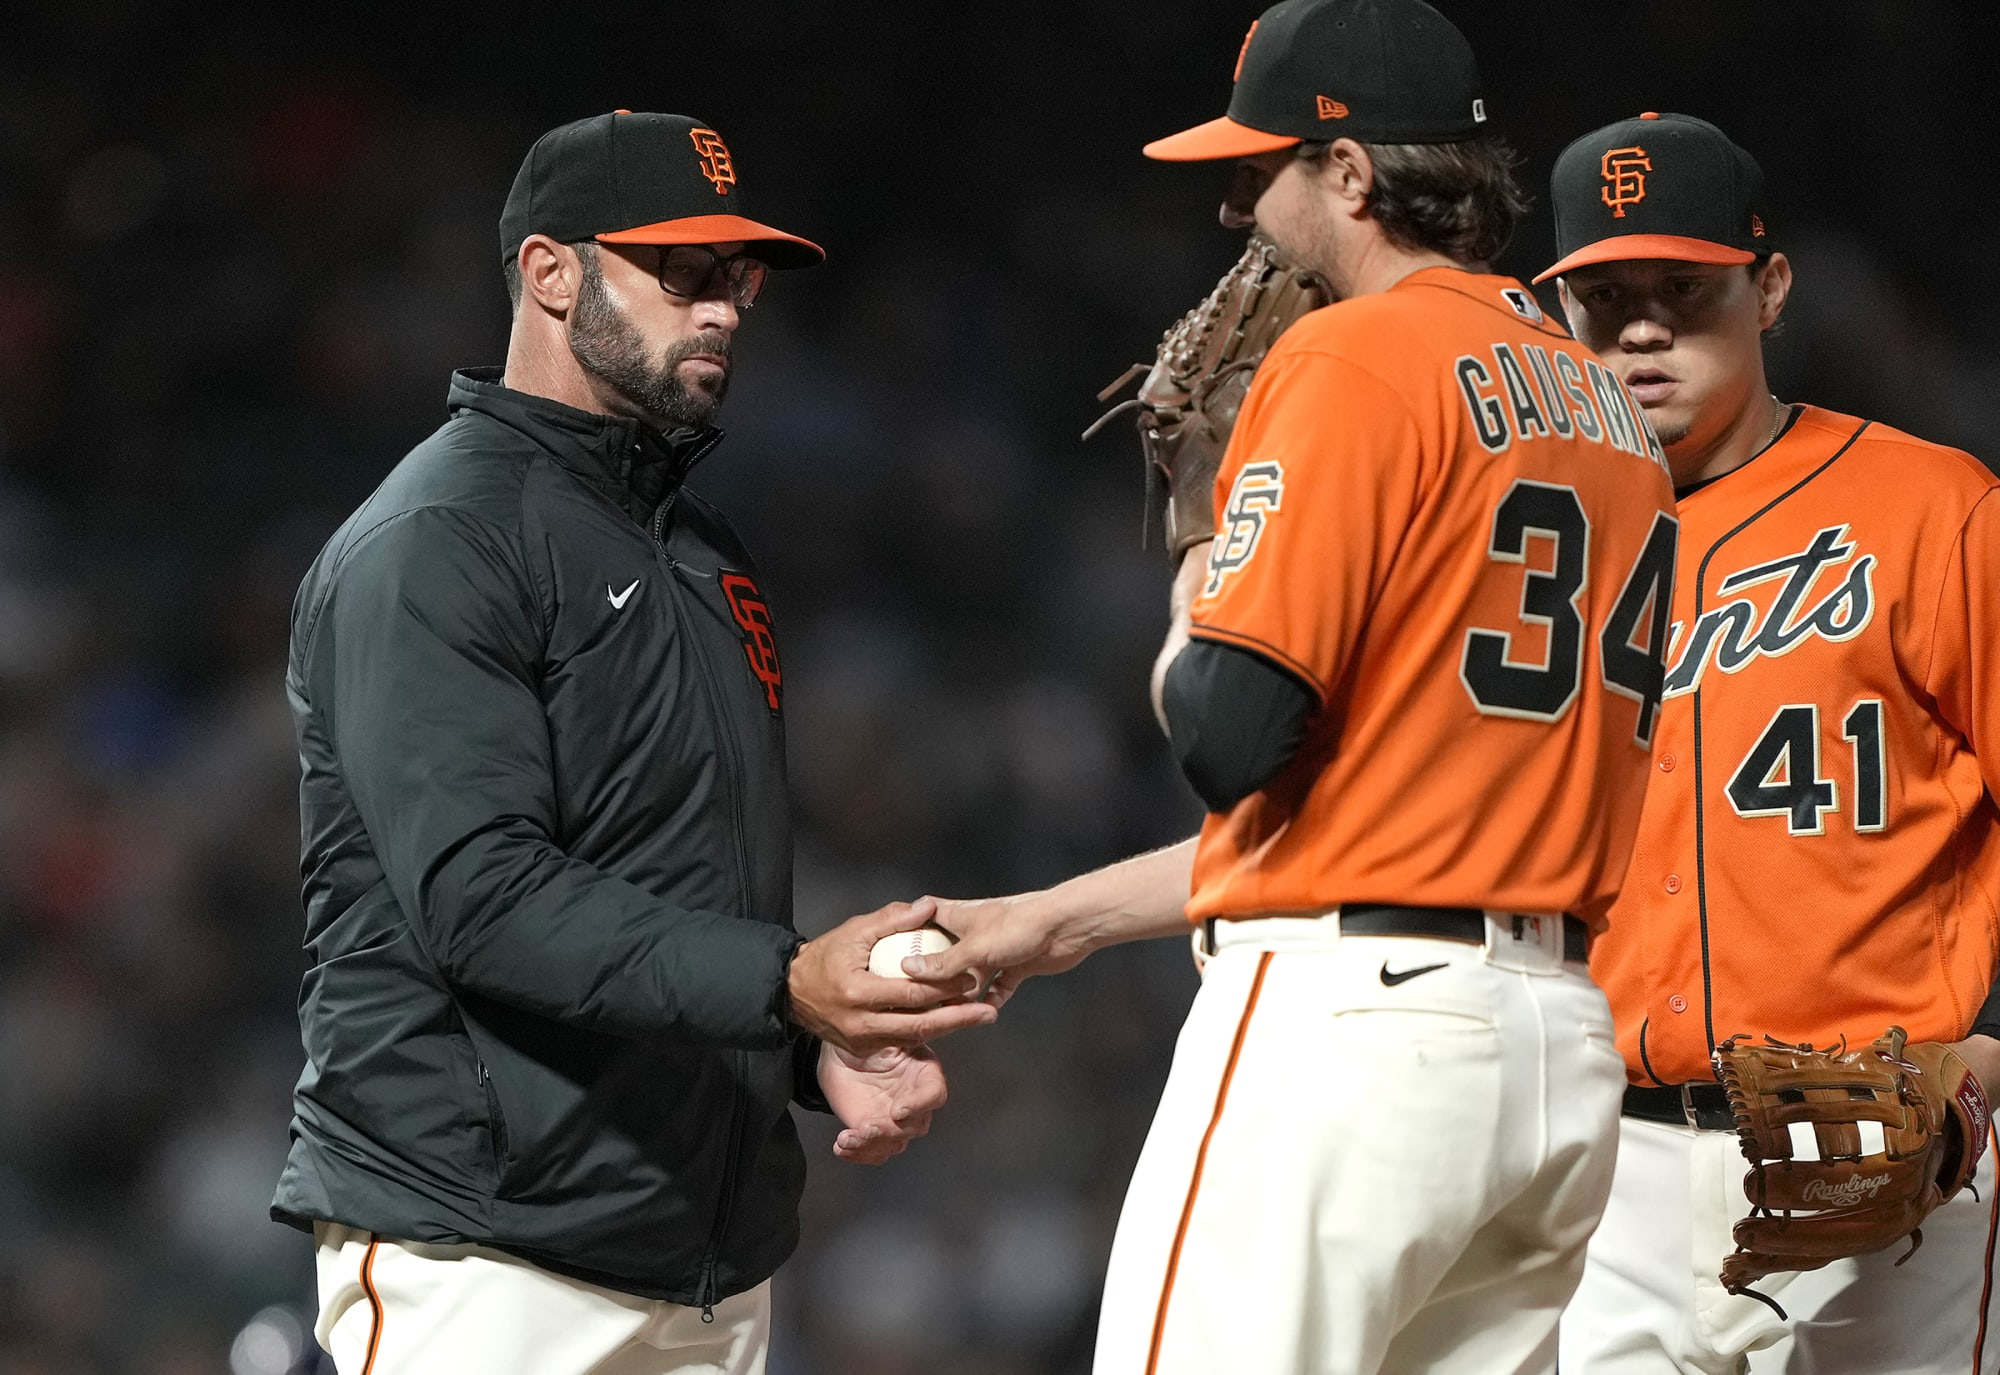 SF Giants: Series opener dropped against the Houston Astros